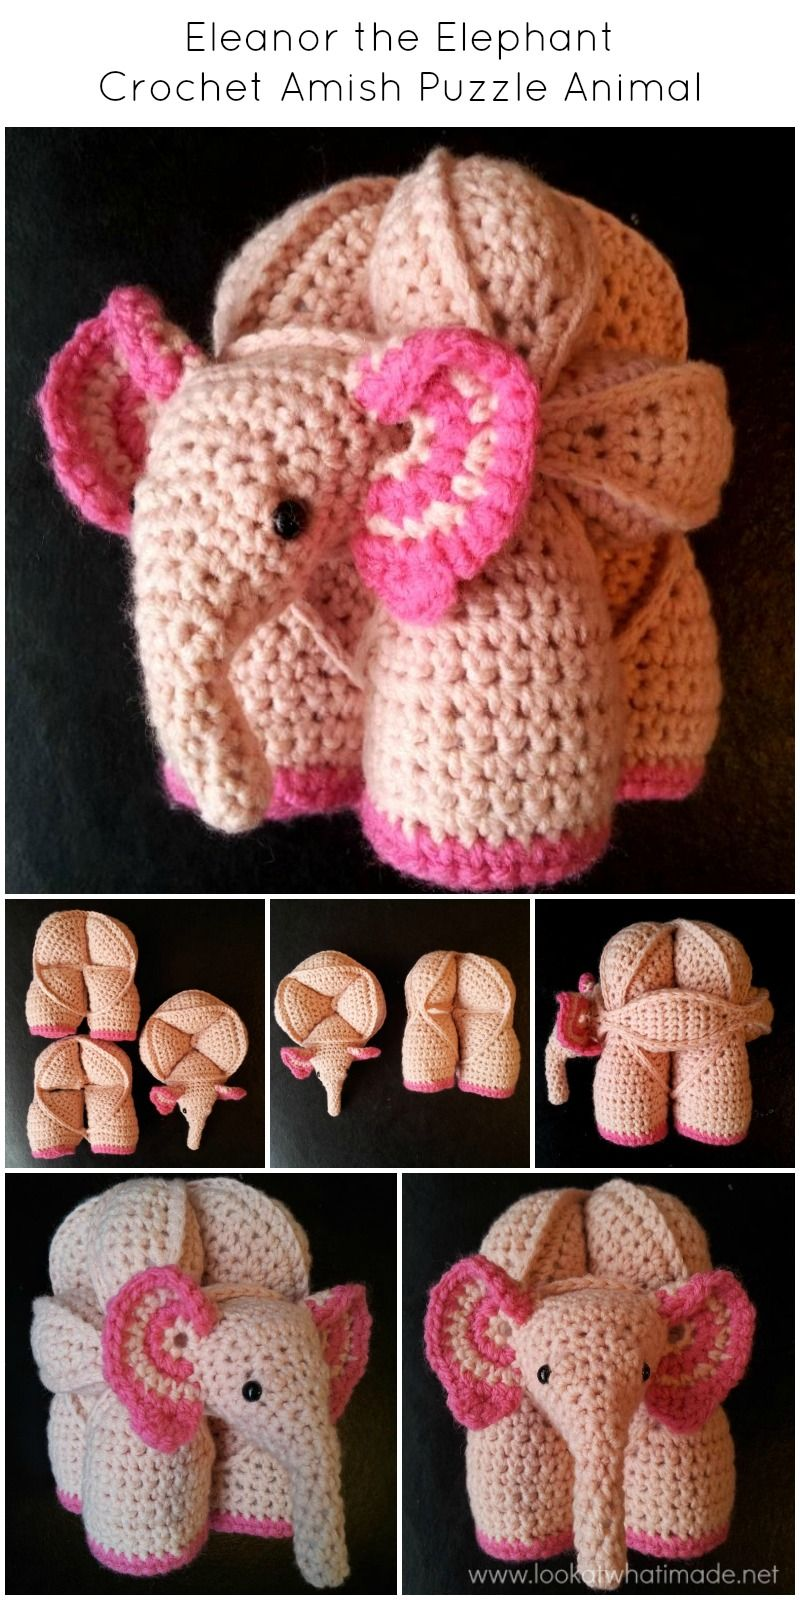 Eleanor the Elephant Crochet Amish Puzzle Ball by Lookatwhatimade ...